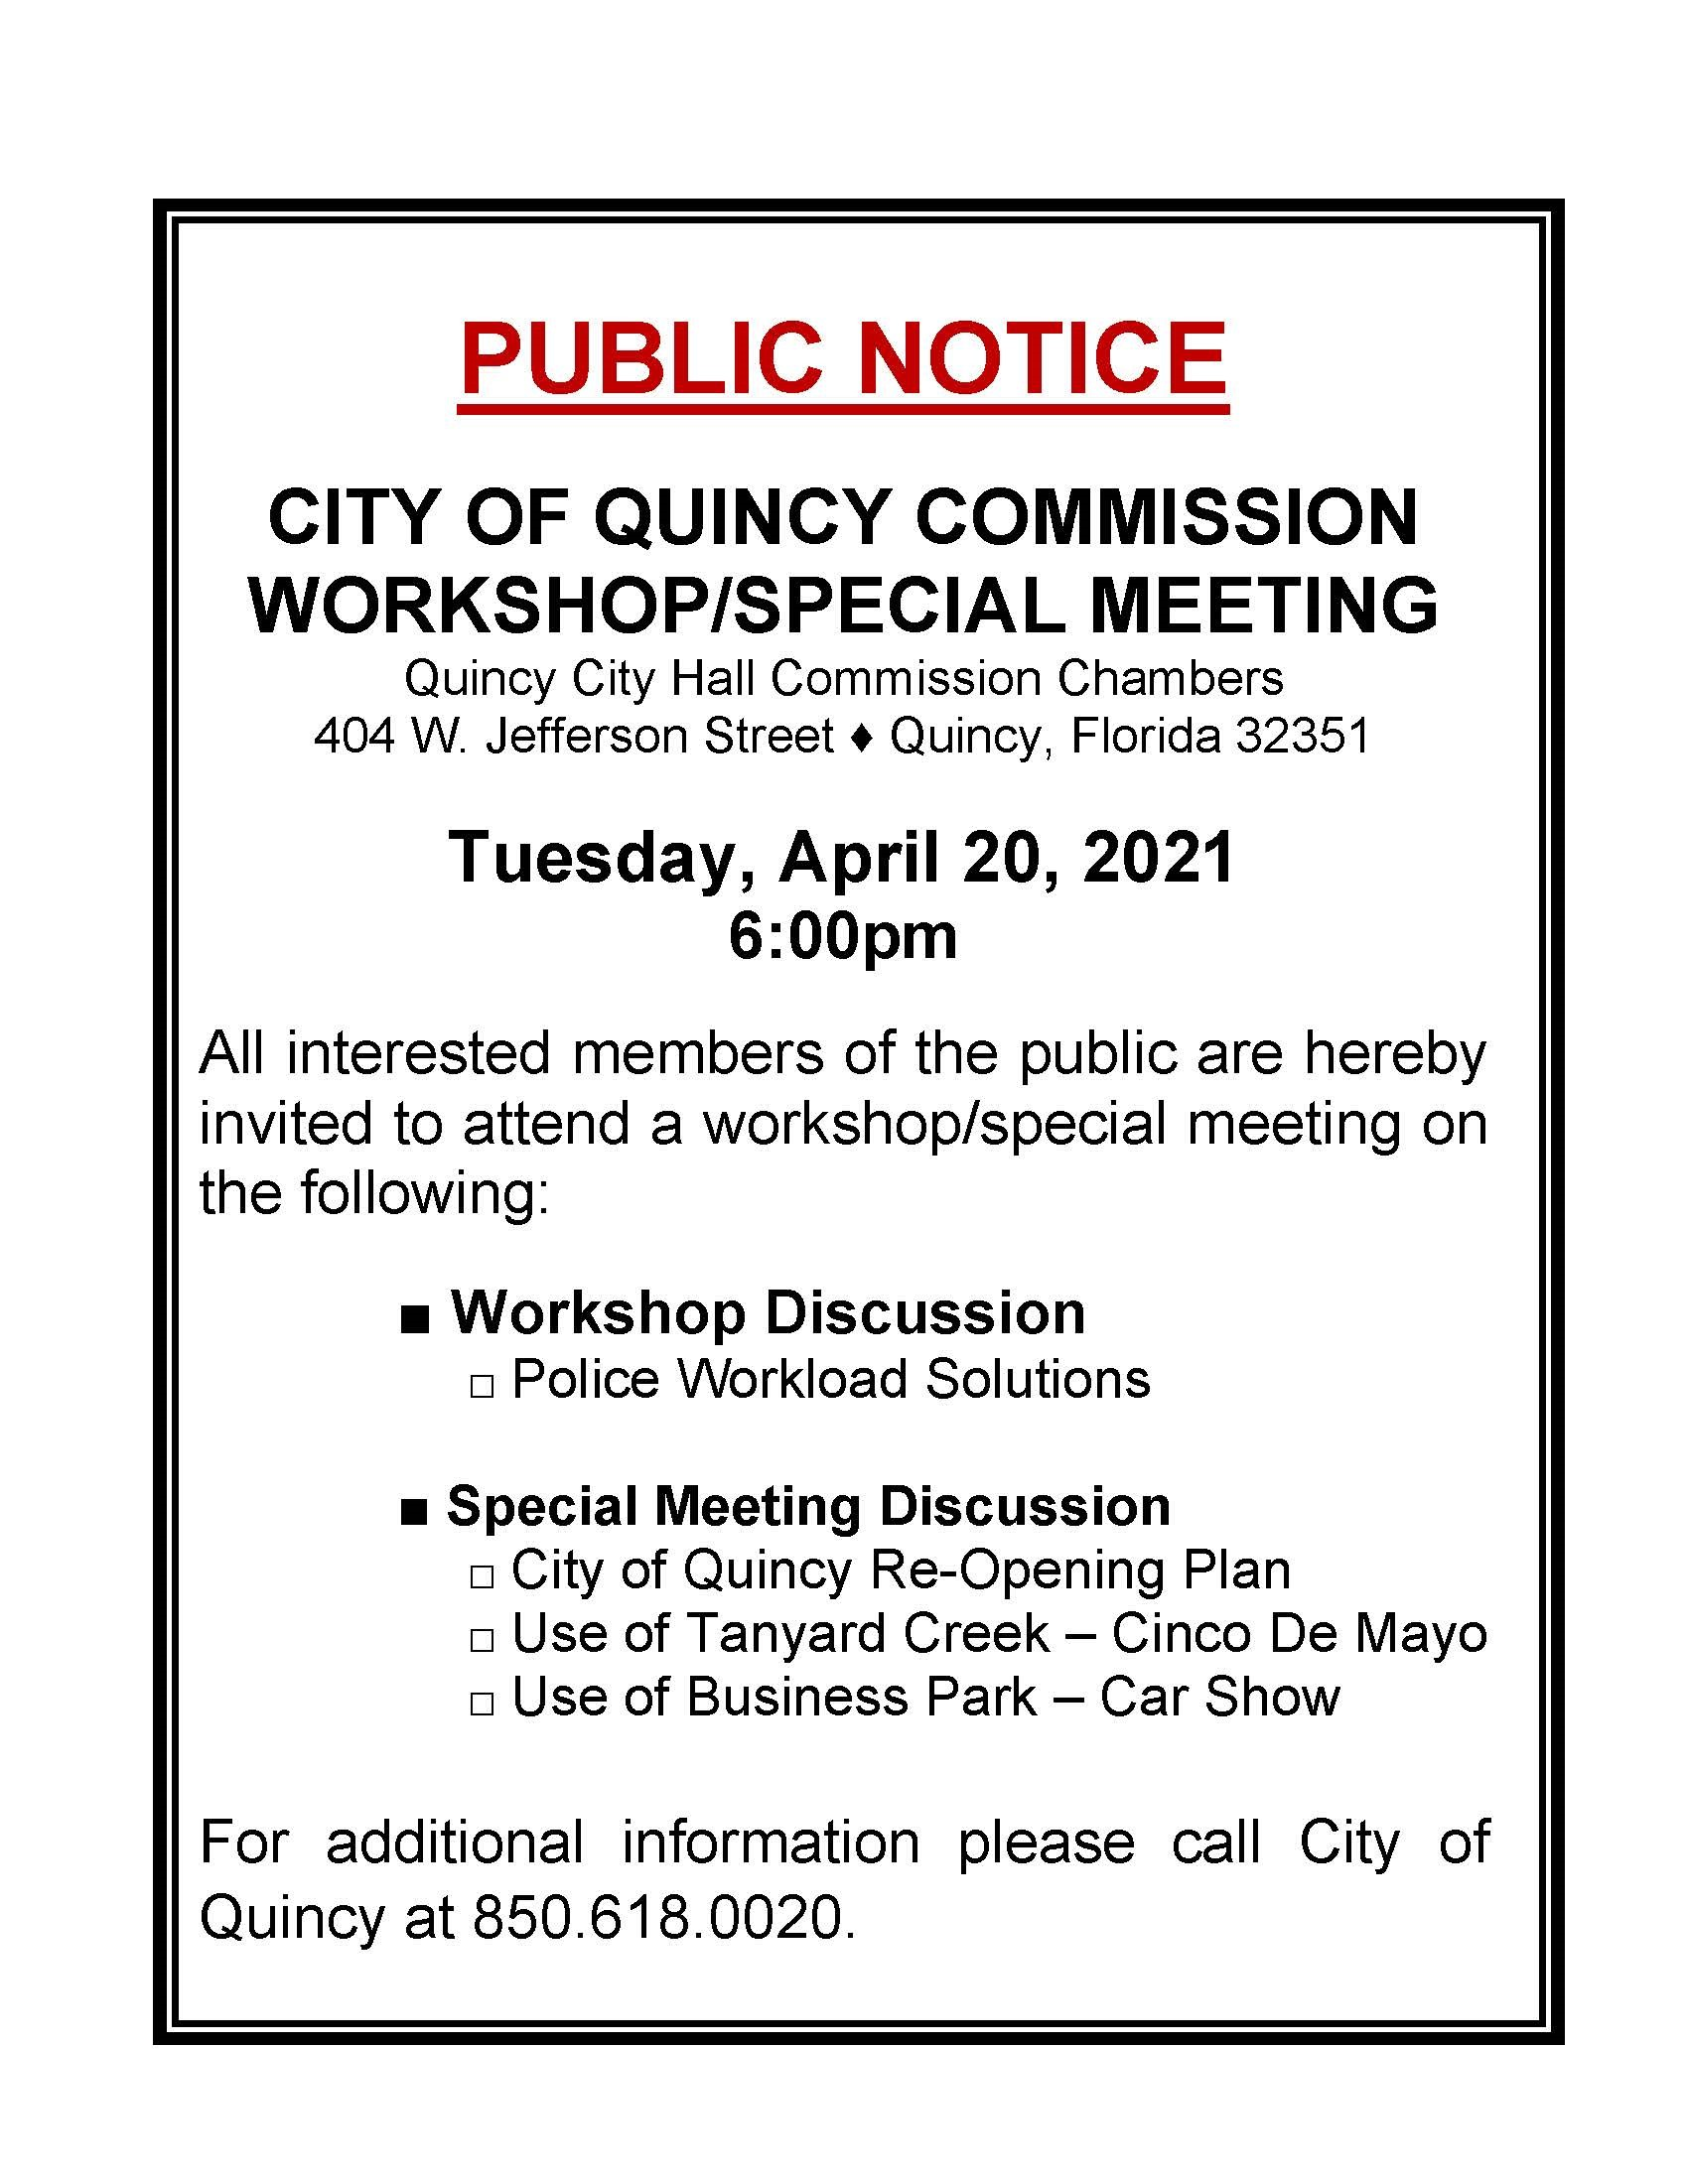 Notice of Special Meeting/Workshop @ City Commission Chambers